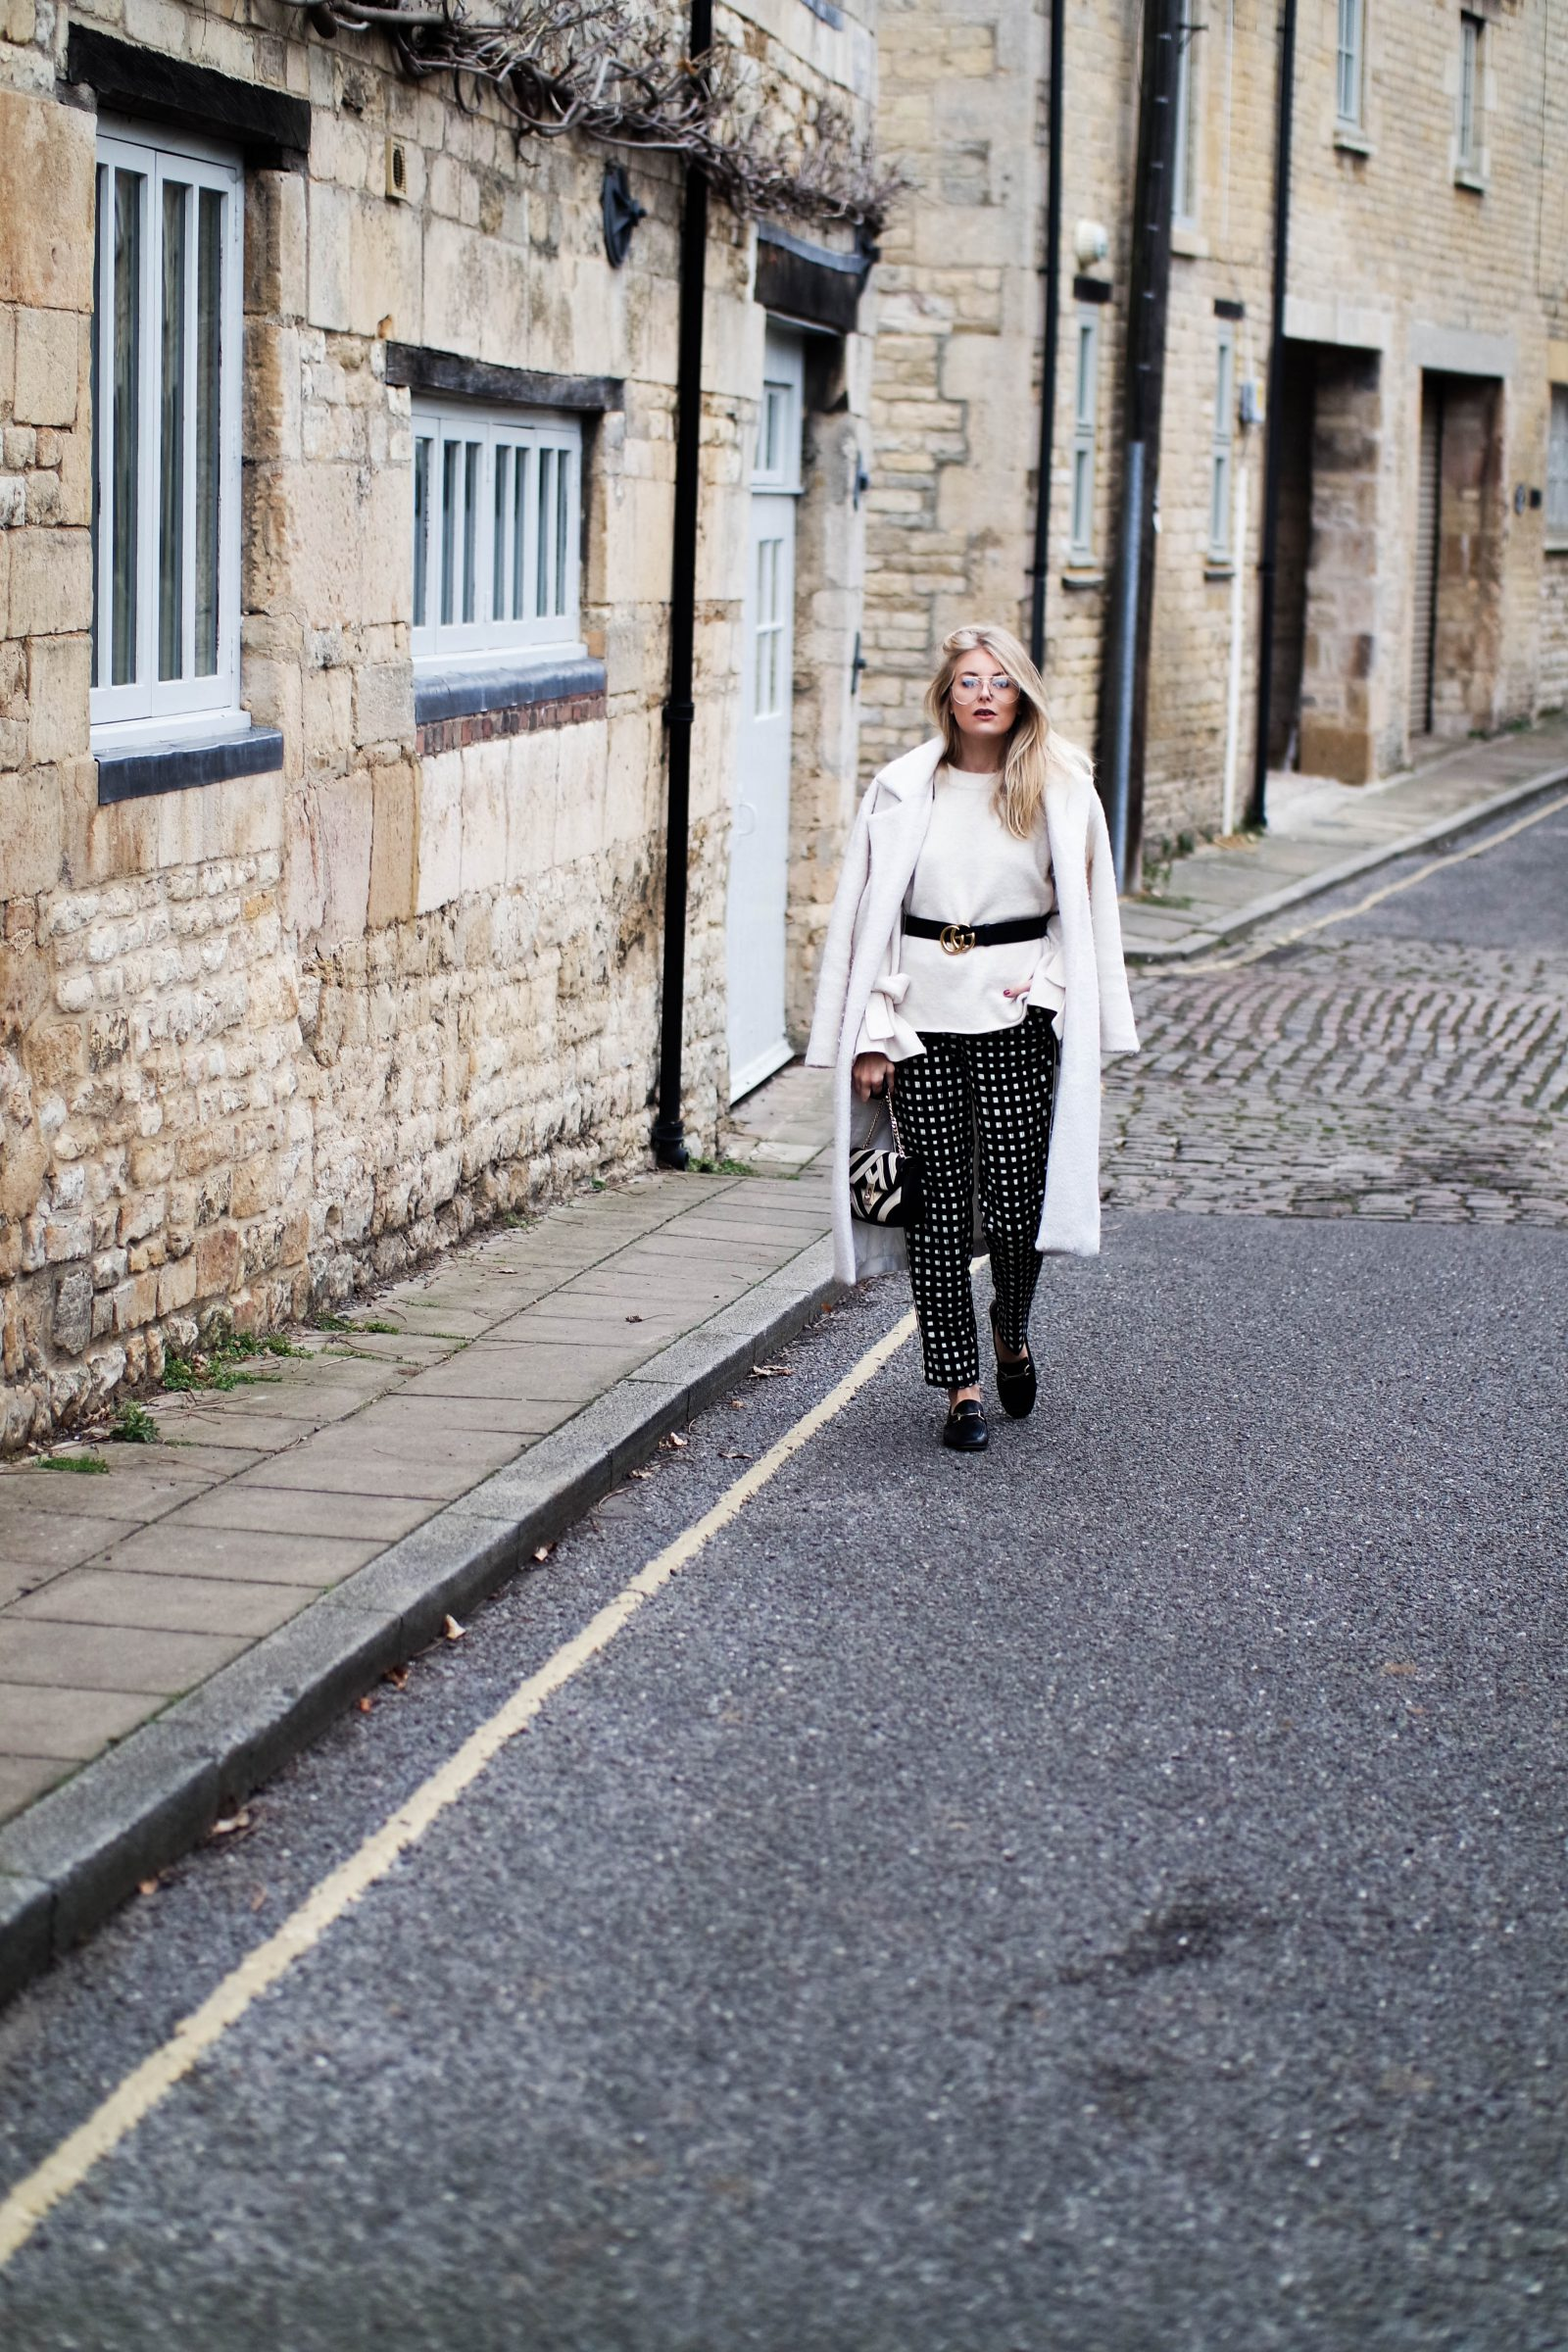 Printed Trousers Trying Something New - Blogger Street Style